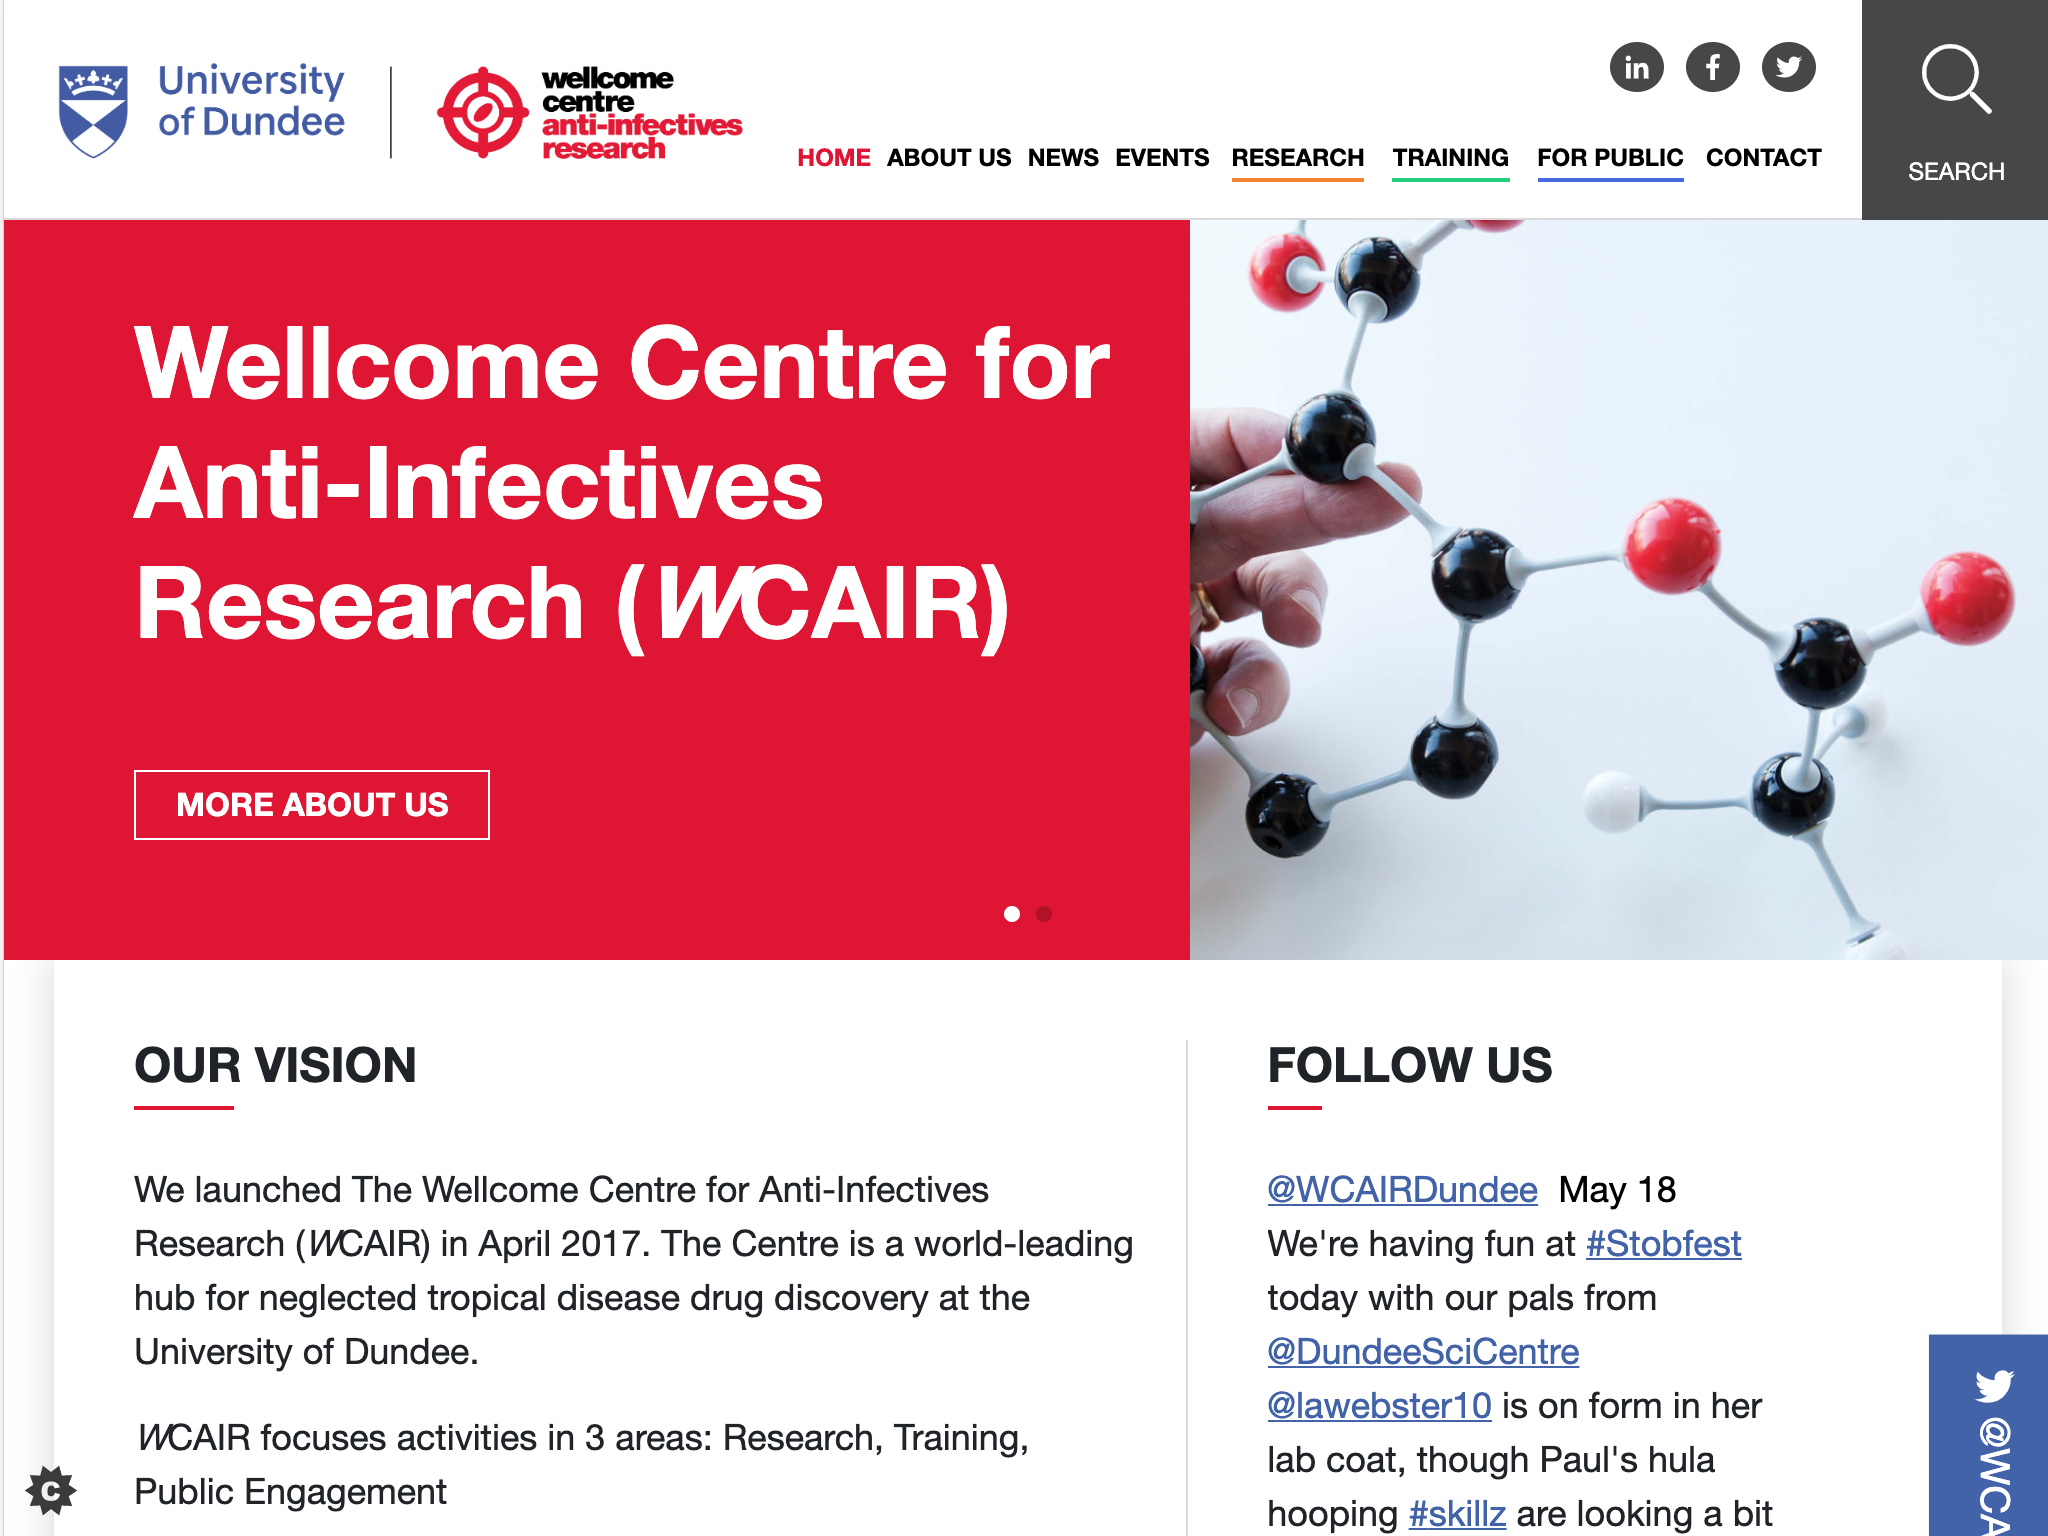 WCAIR Website